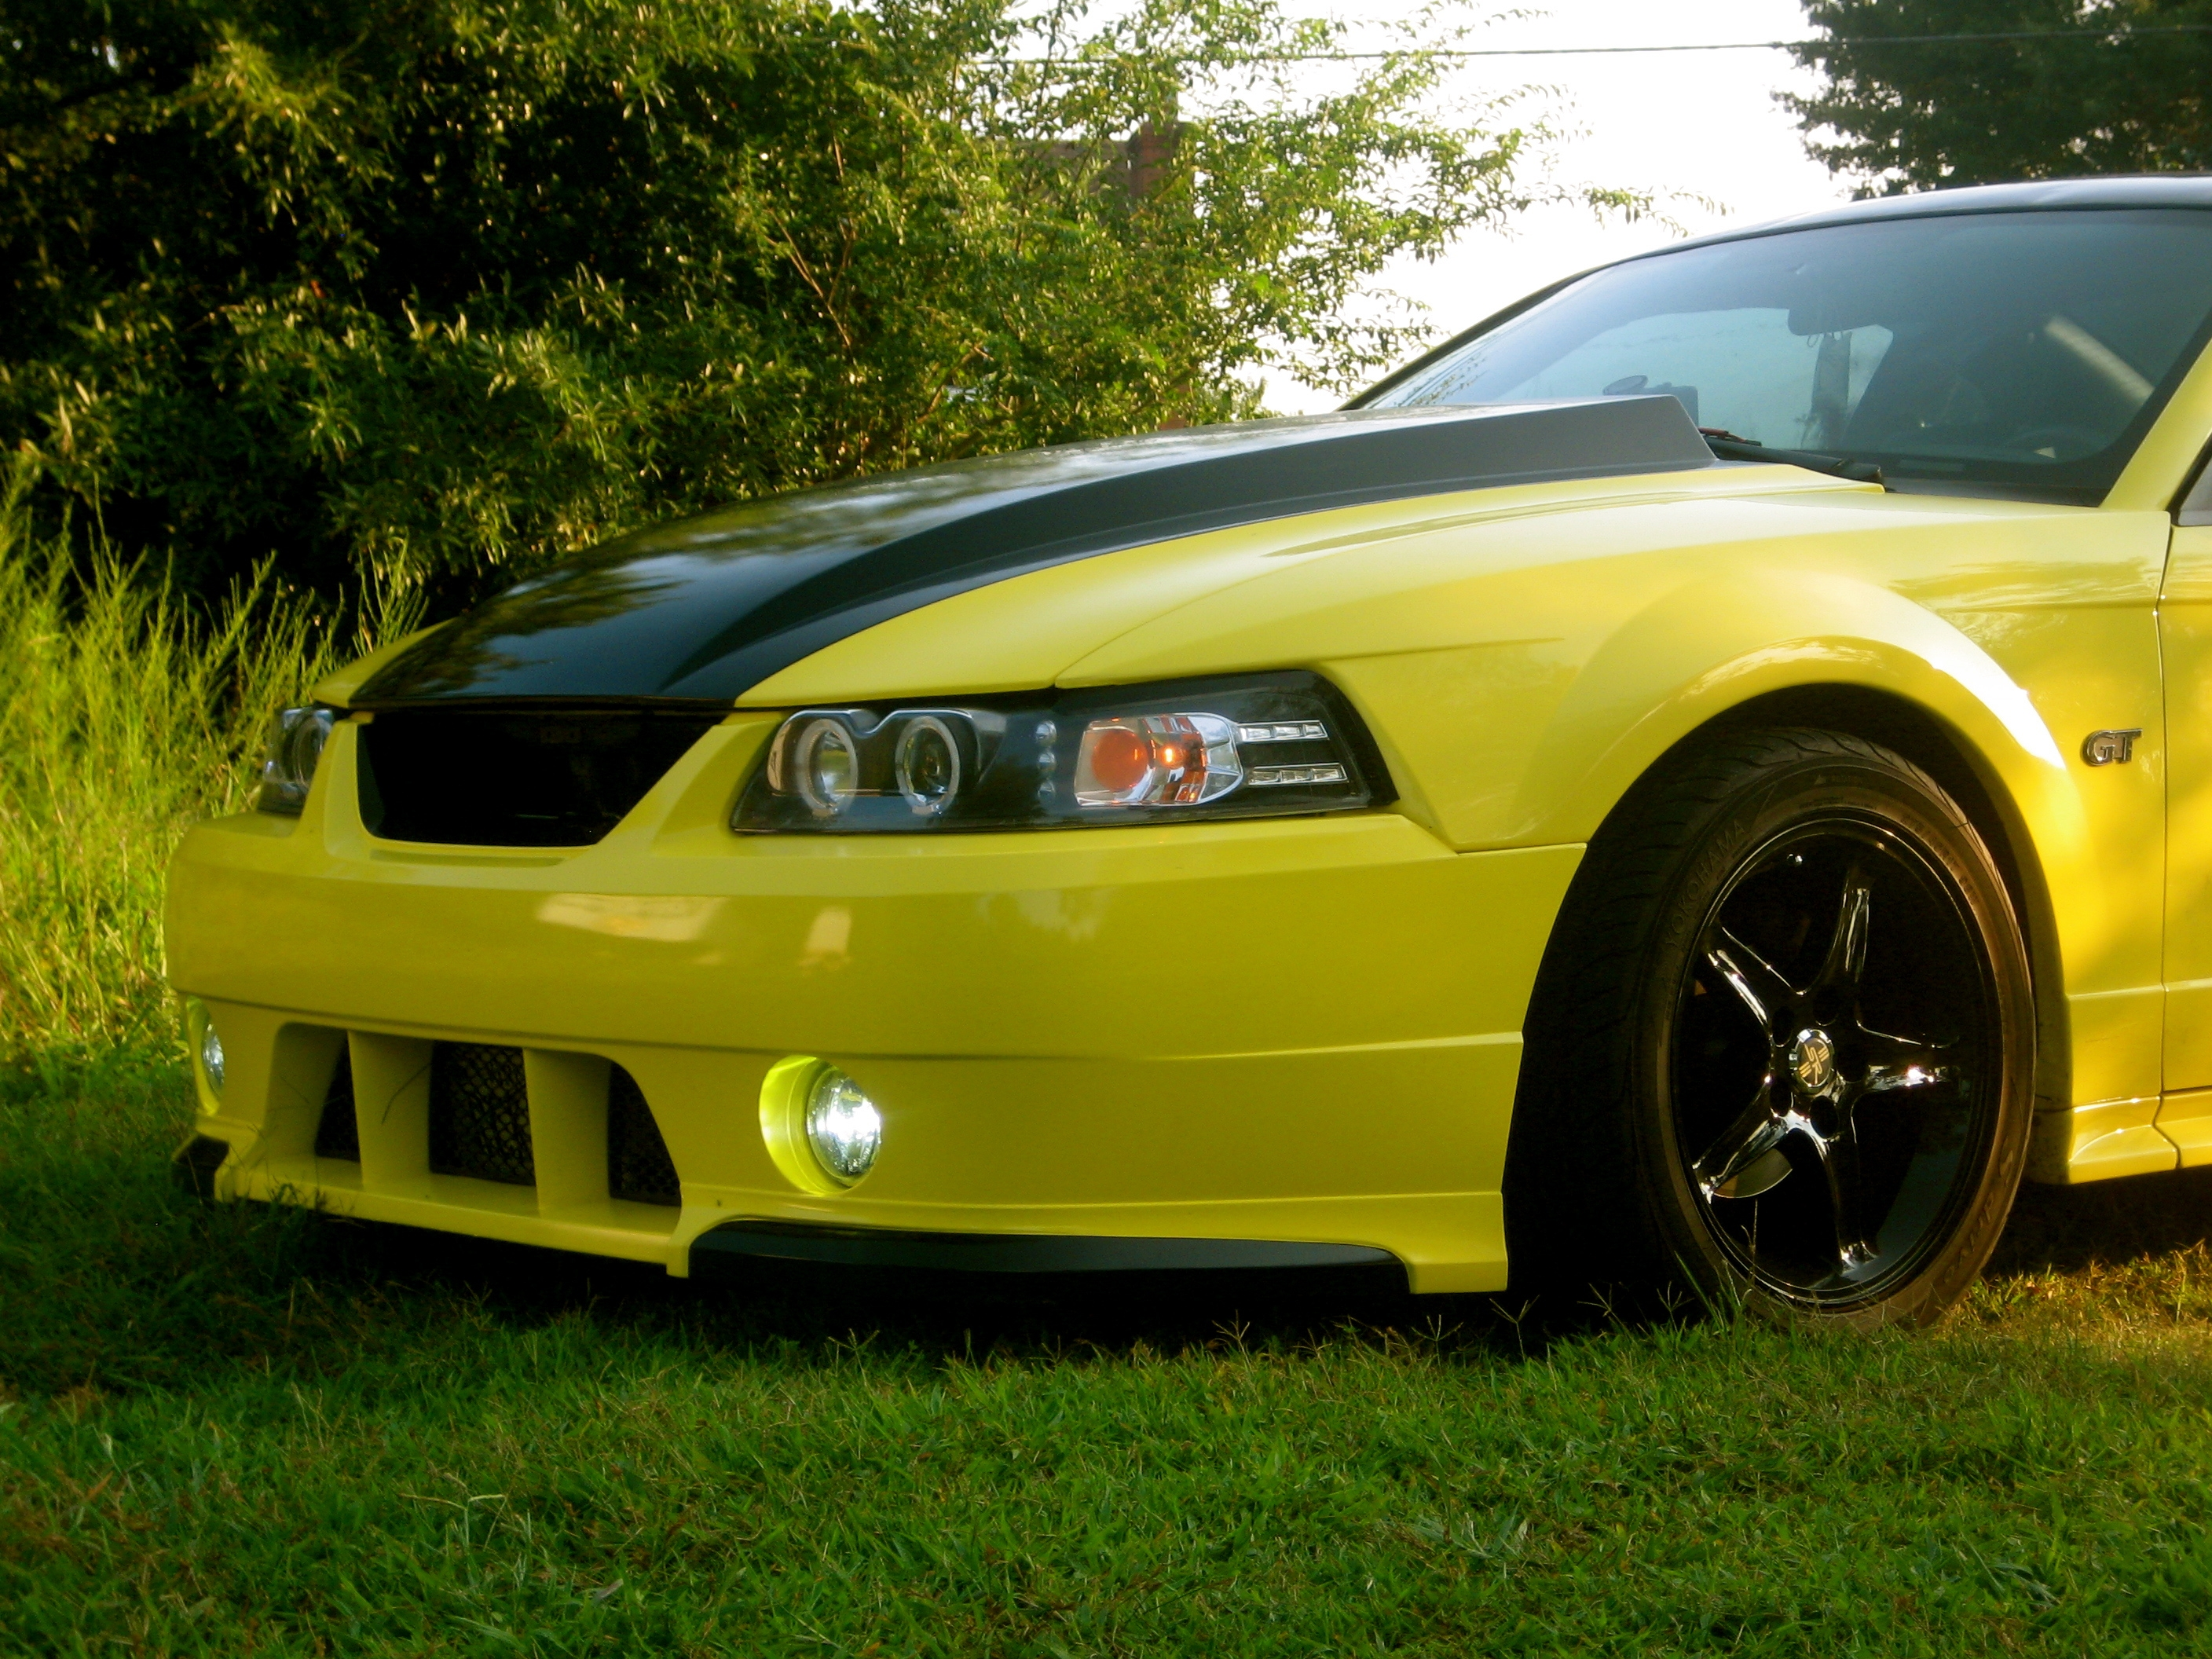 03GTBananaRocket 2003 Ford Mustang 13188183